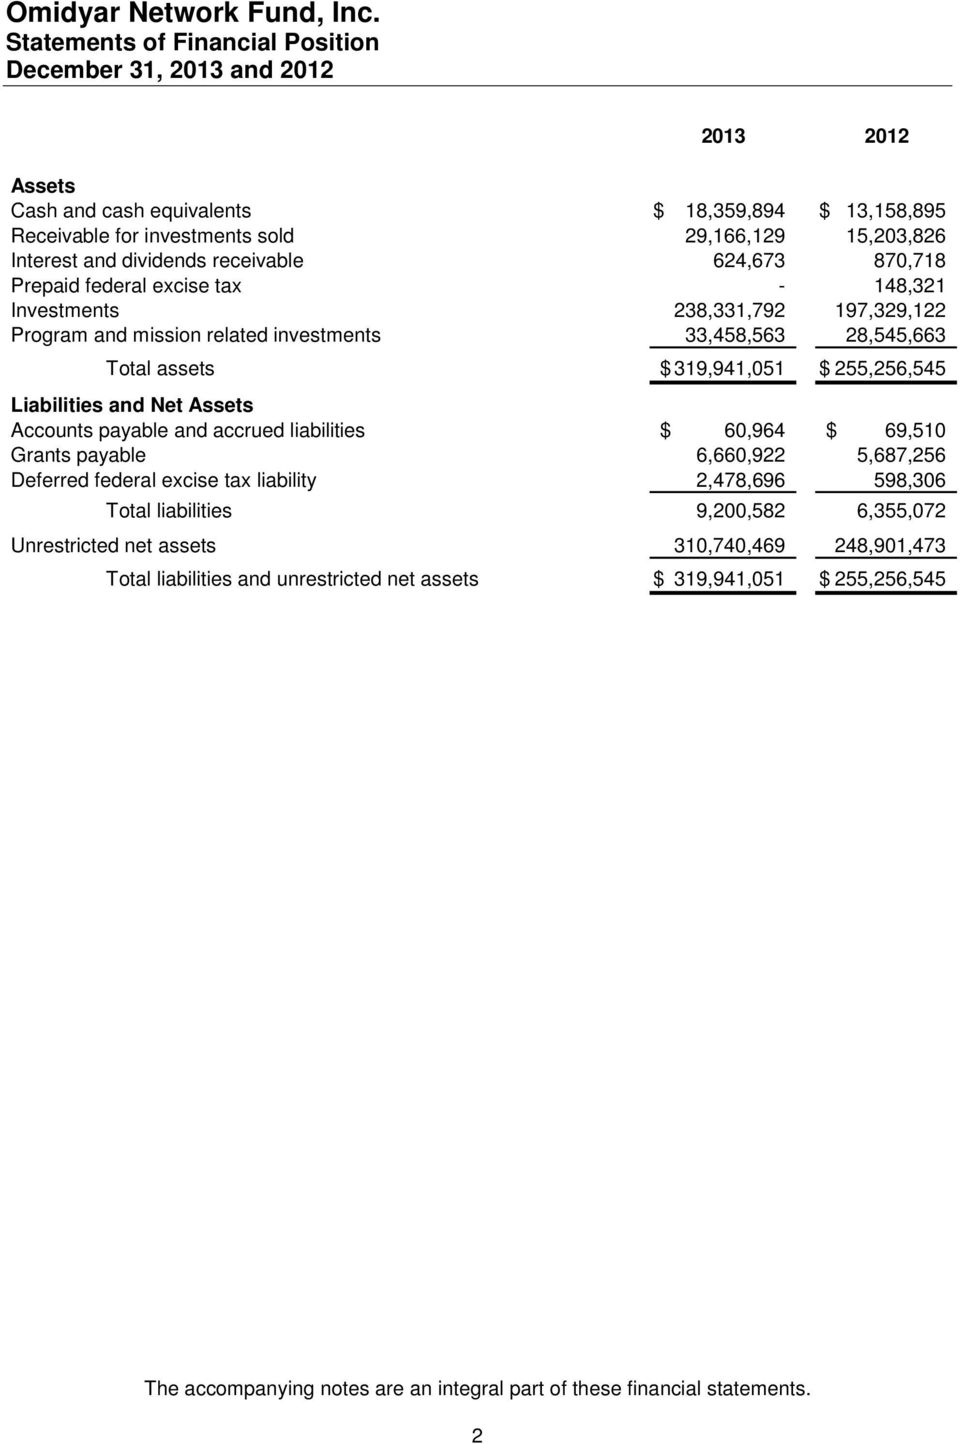 and Net Assets Accounts payable and accrued liabilities $ 60,964 $ 69,510 Grants payable 6,660,922 5,687,256 Deferred federal excise tax liability 2,478,696 598,306 Total liabilities 9,200,582